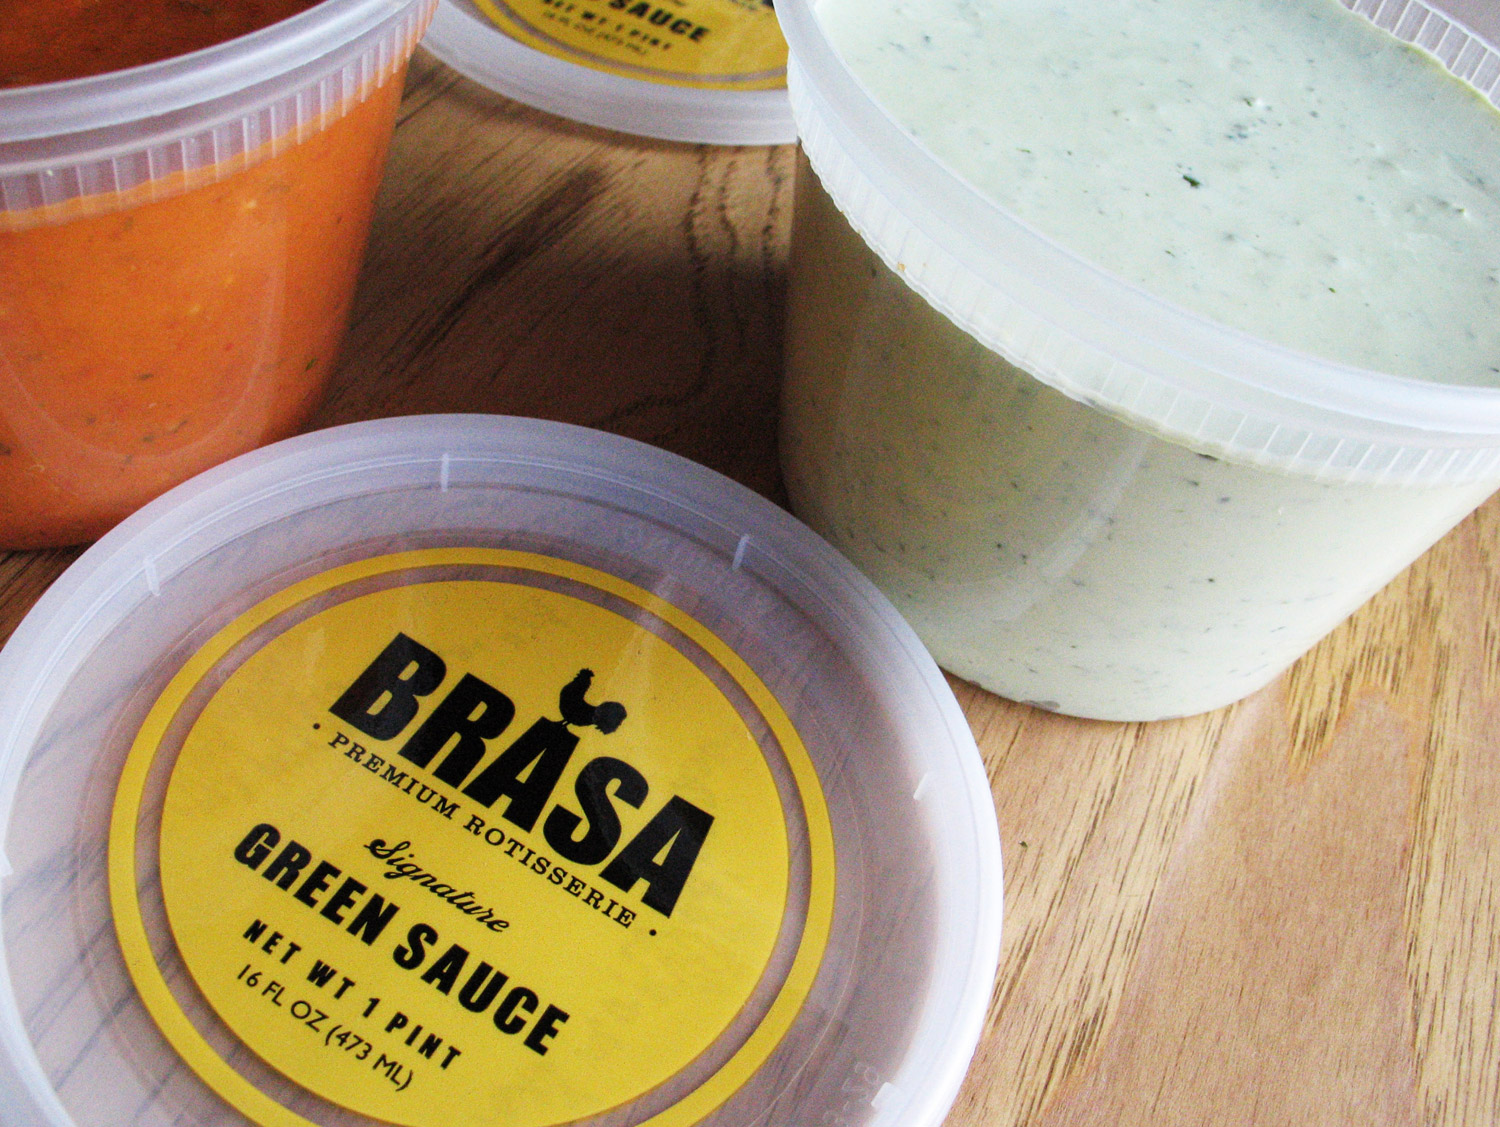 Brasa-Packaging-09.jpg